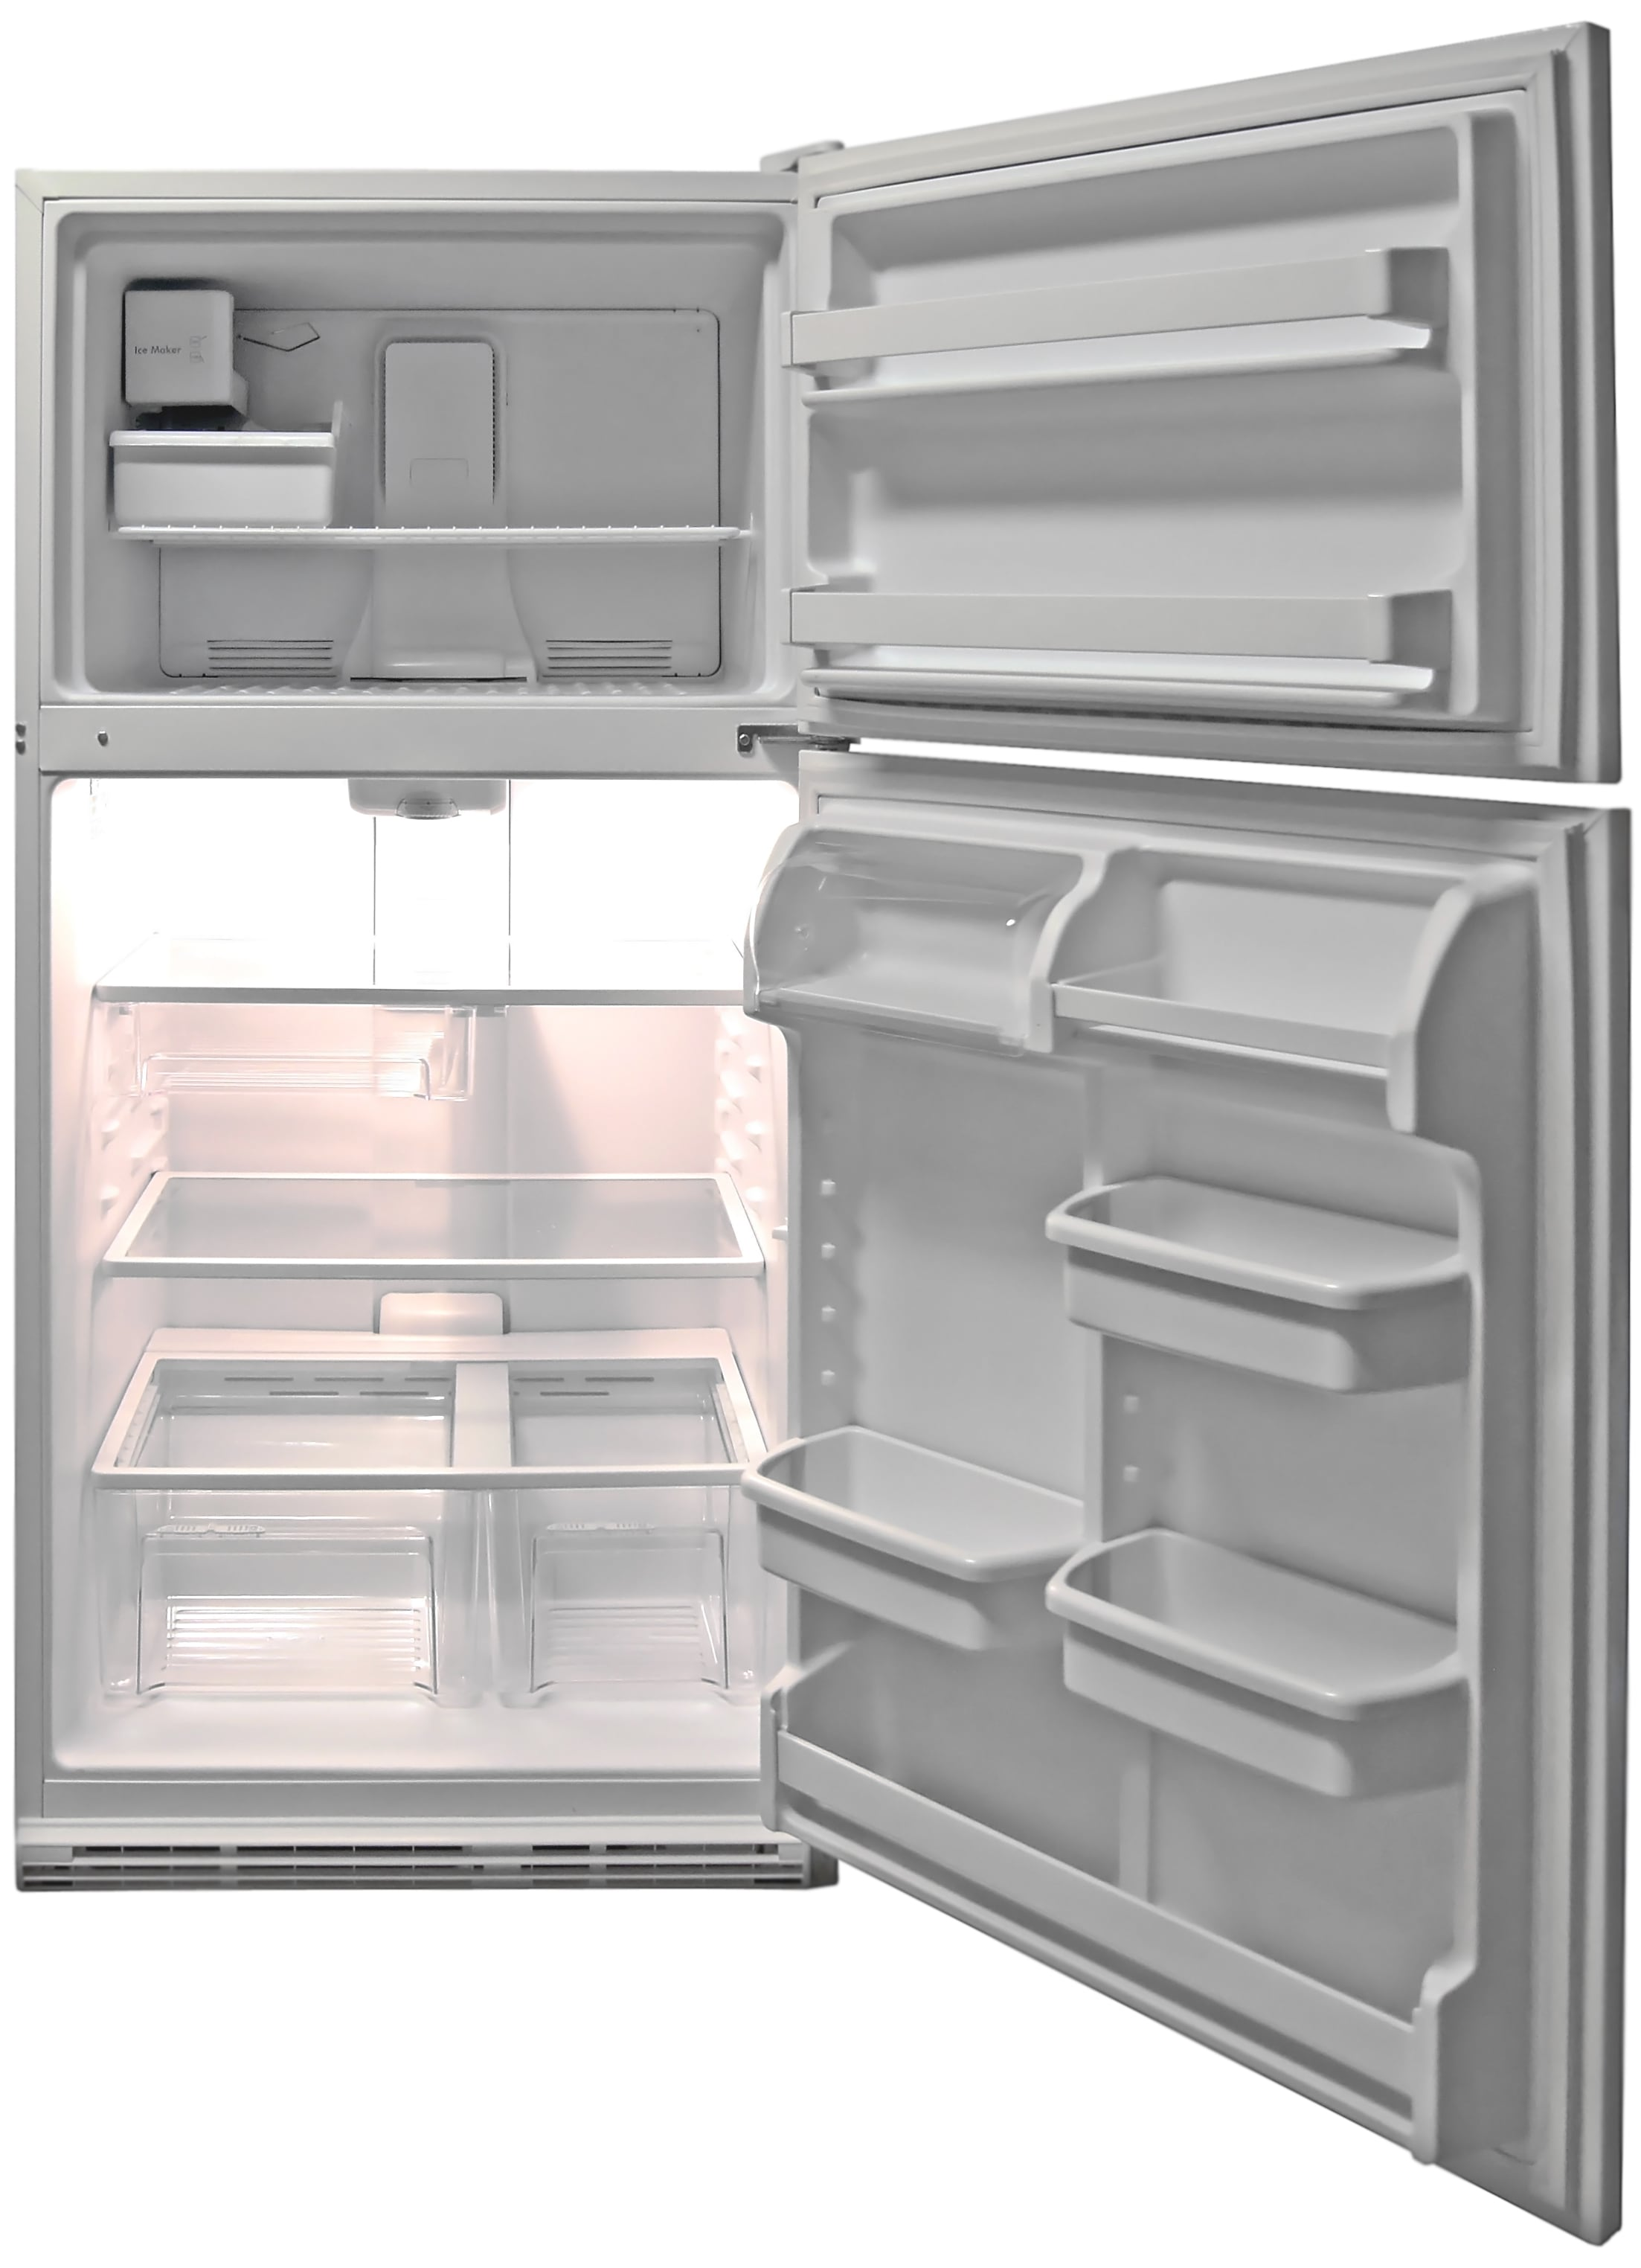 For a 21 cu. ft. fridge, the Kenmore 72152 is quite roomy.